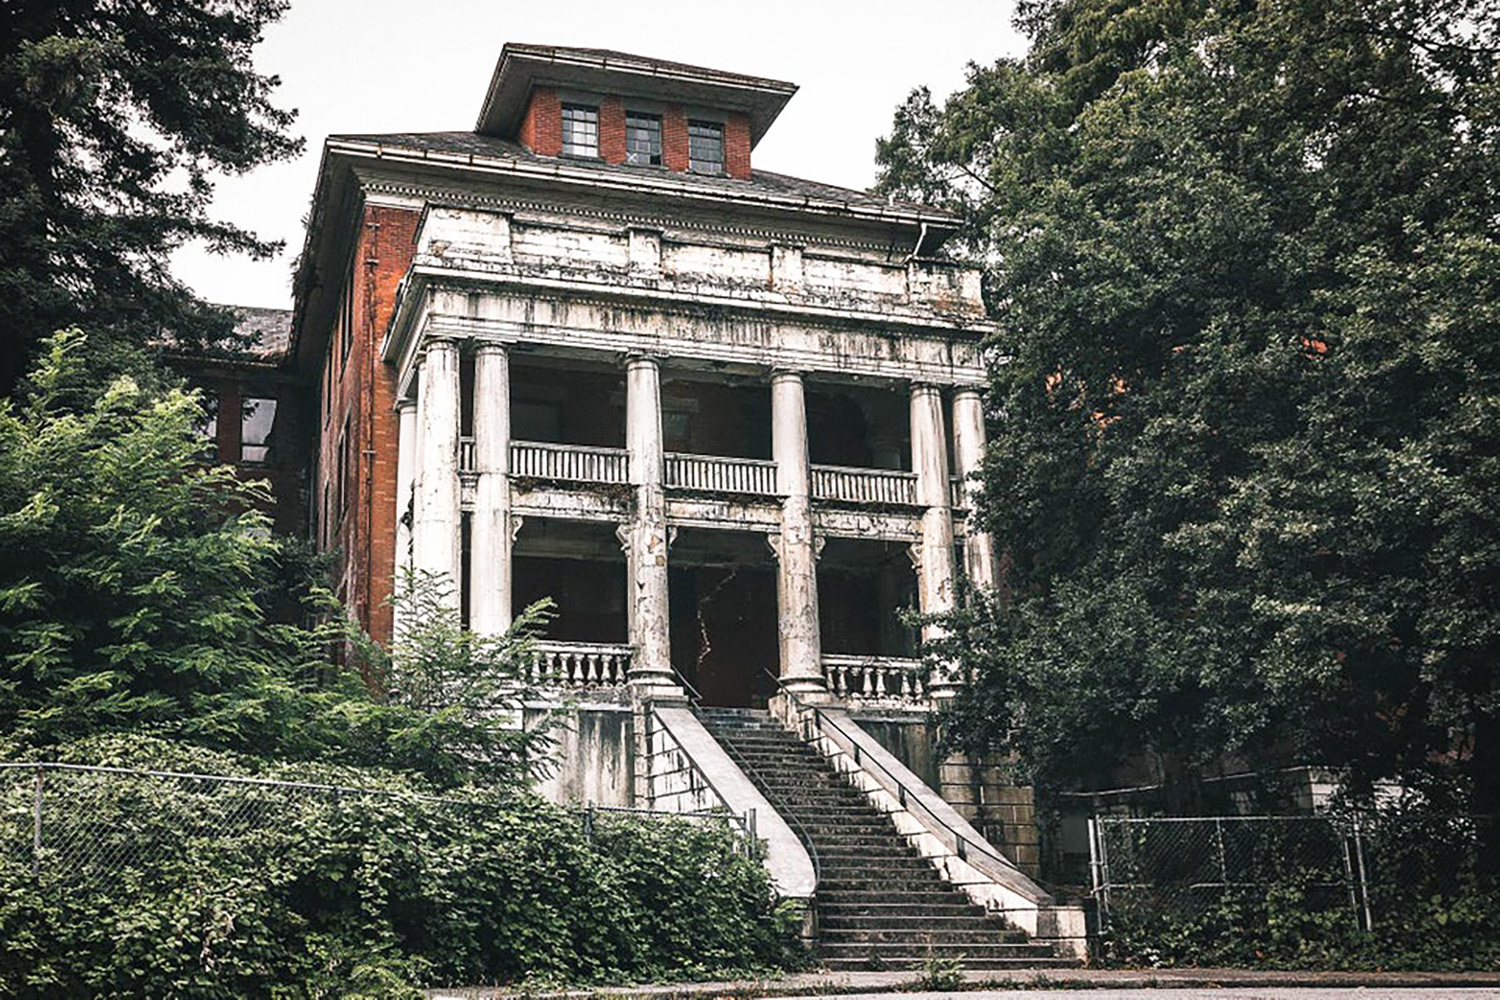 riverview hospital abandoned filming location west lawn building